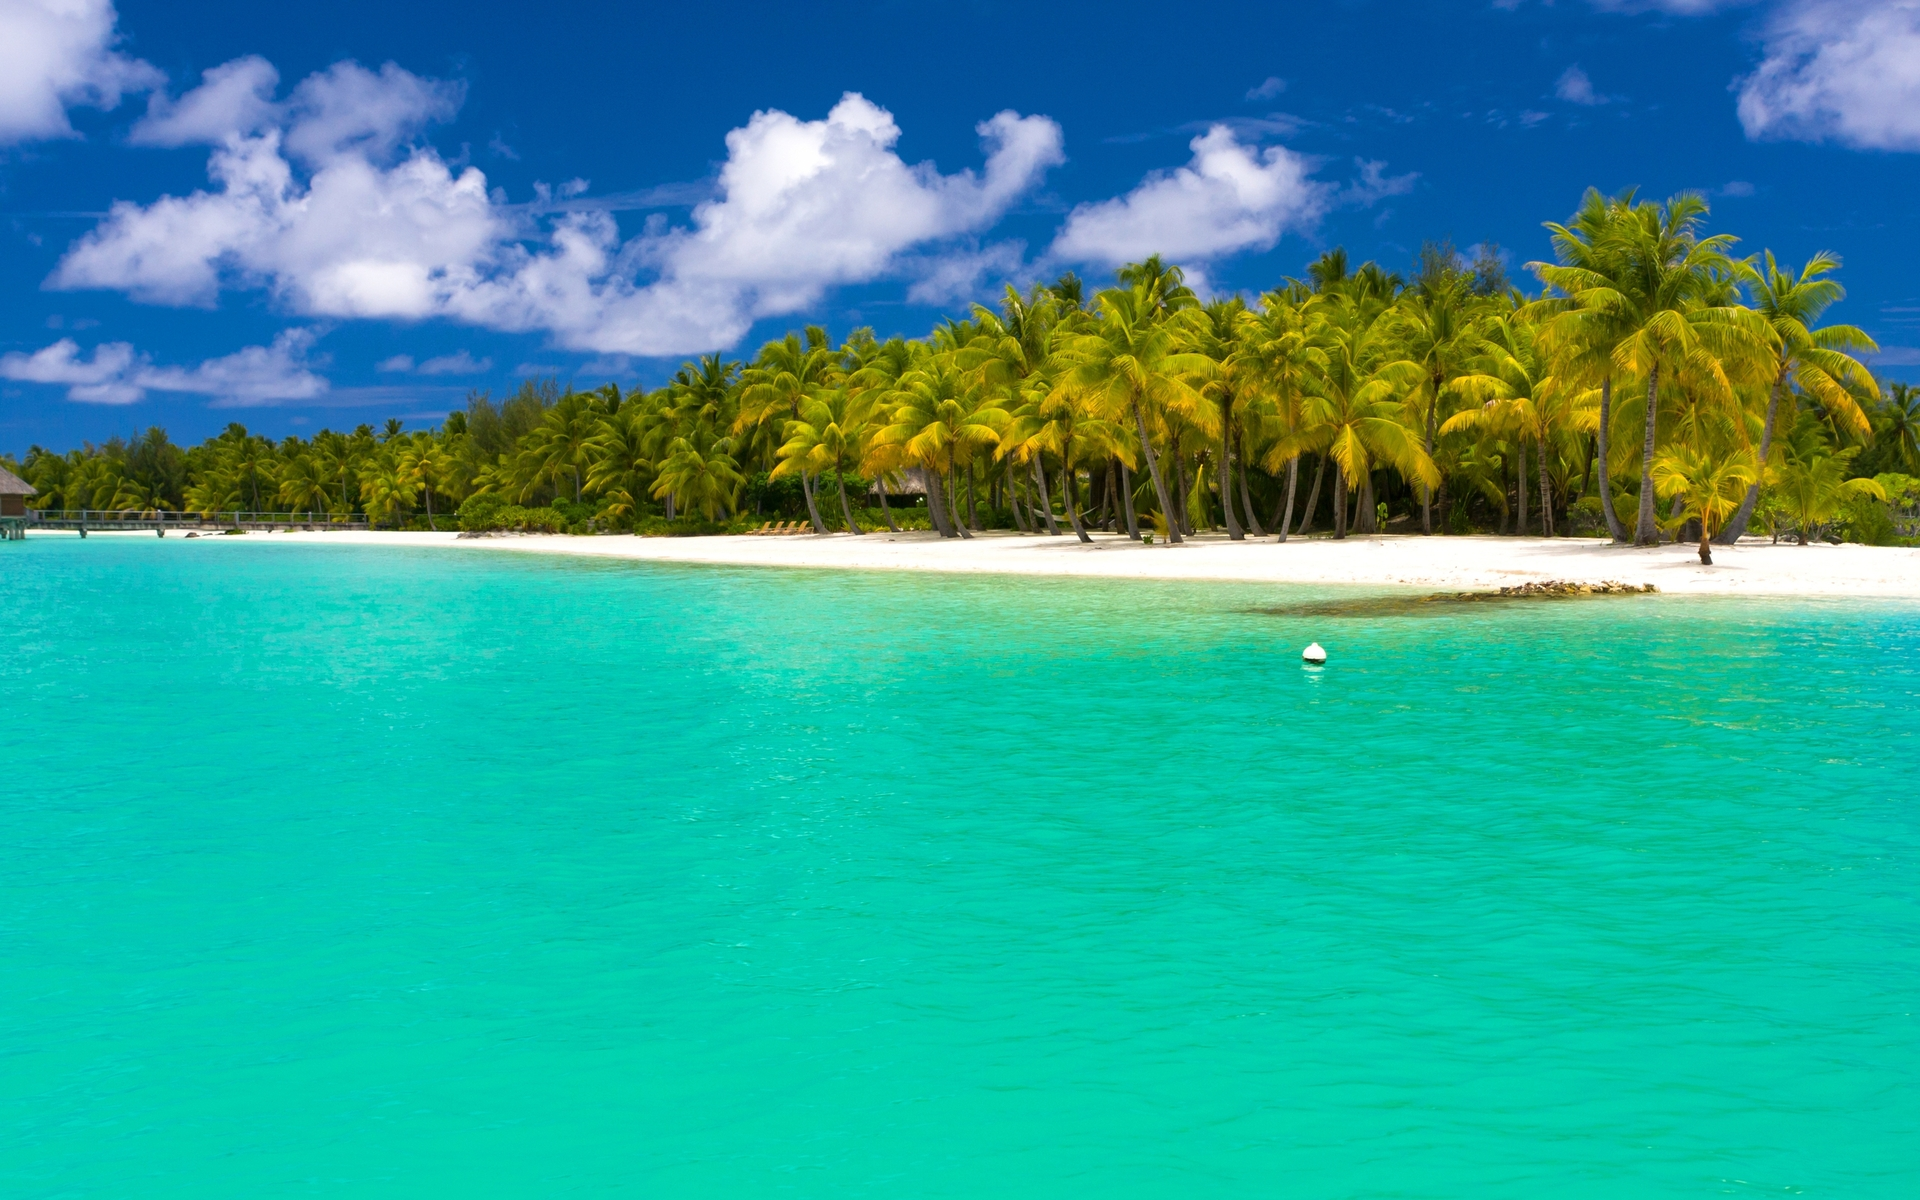 Amazing Tropical Island Desktop Background HD 1920x1200 1920x1200